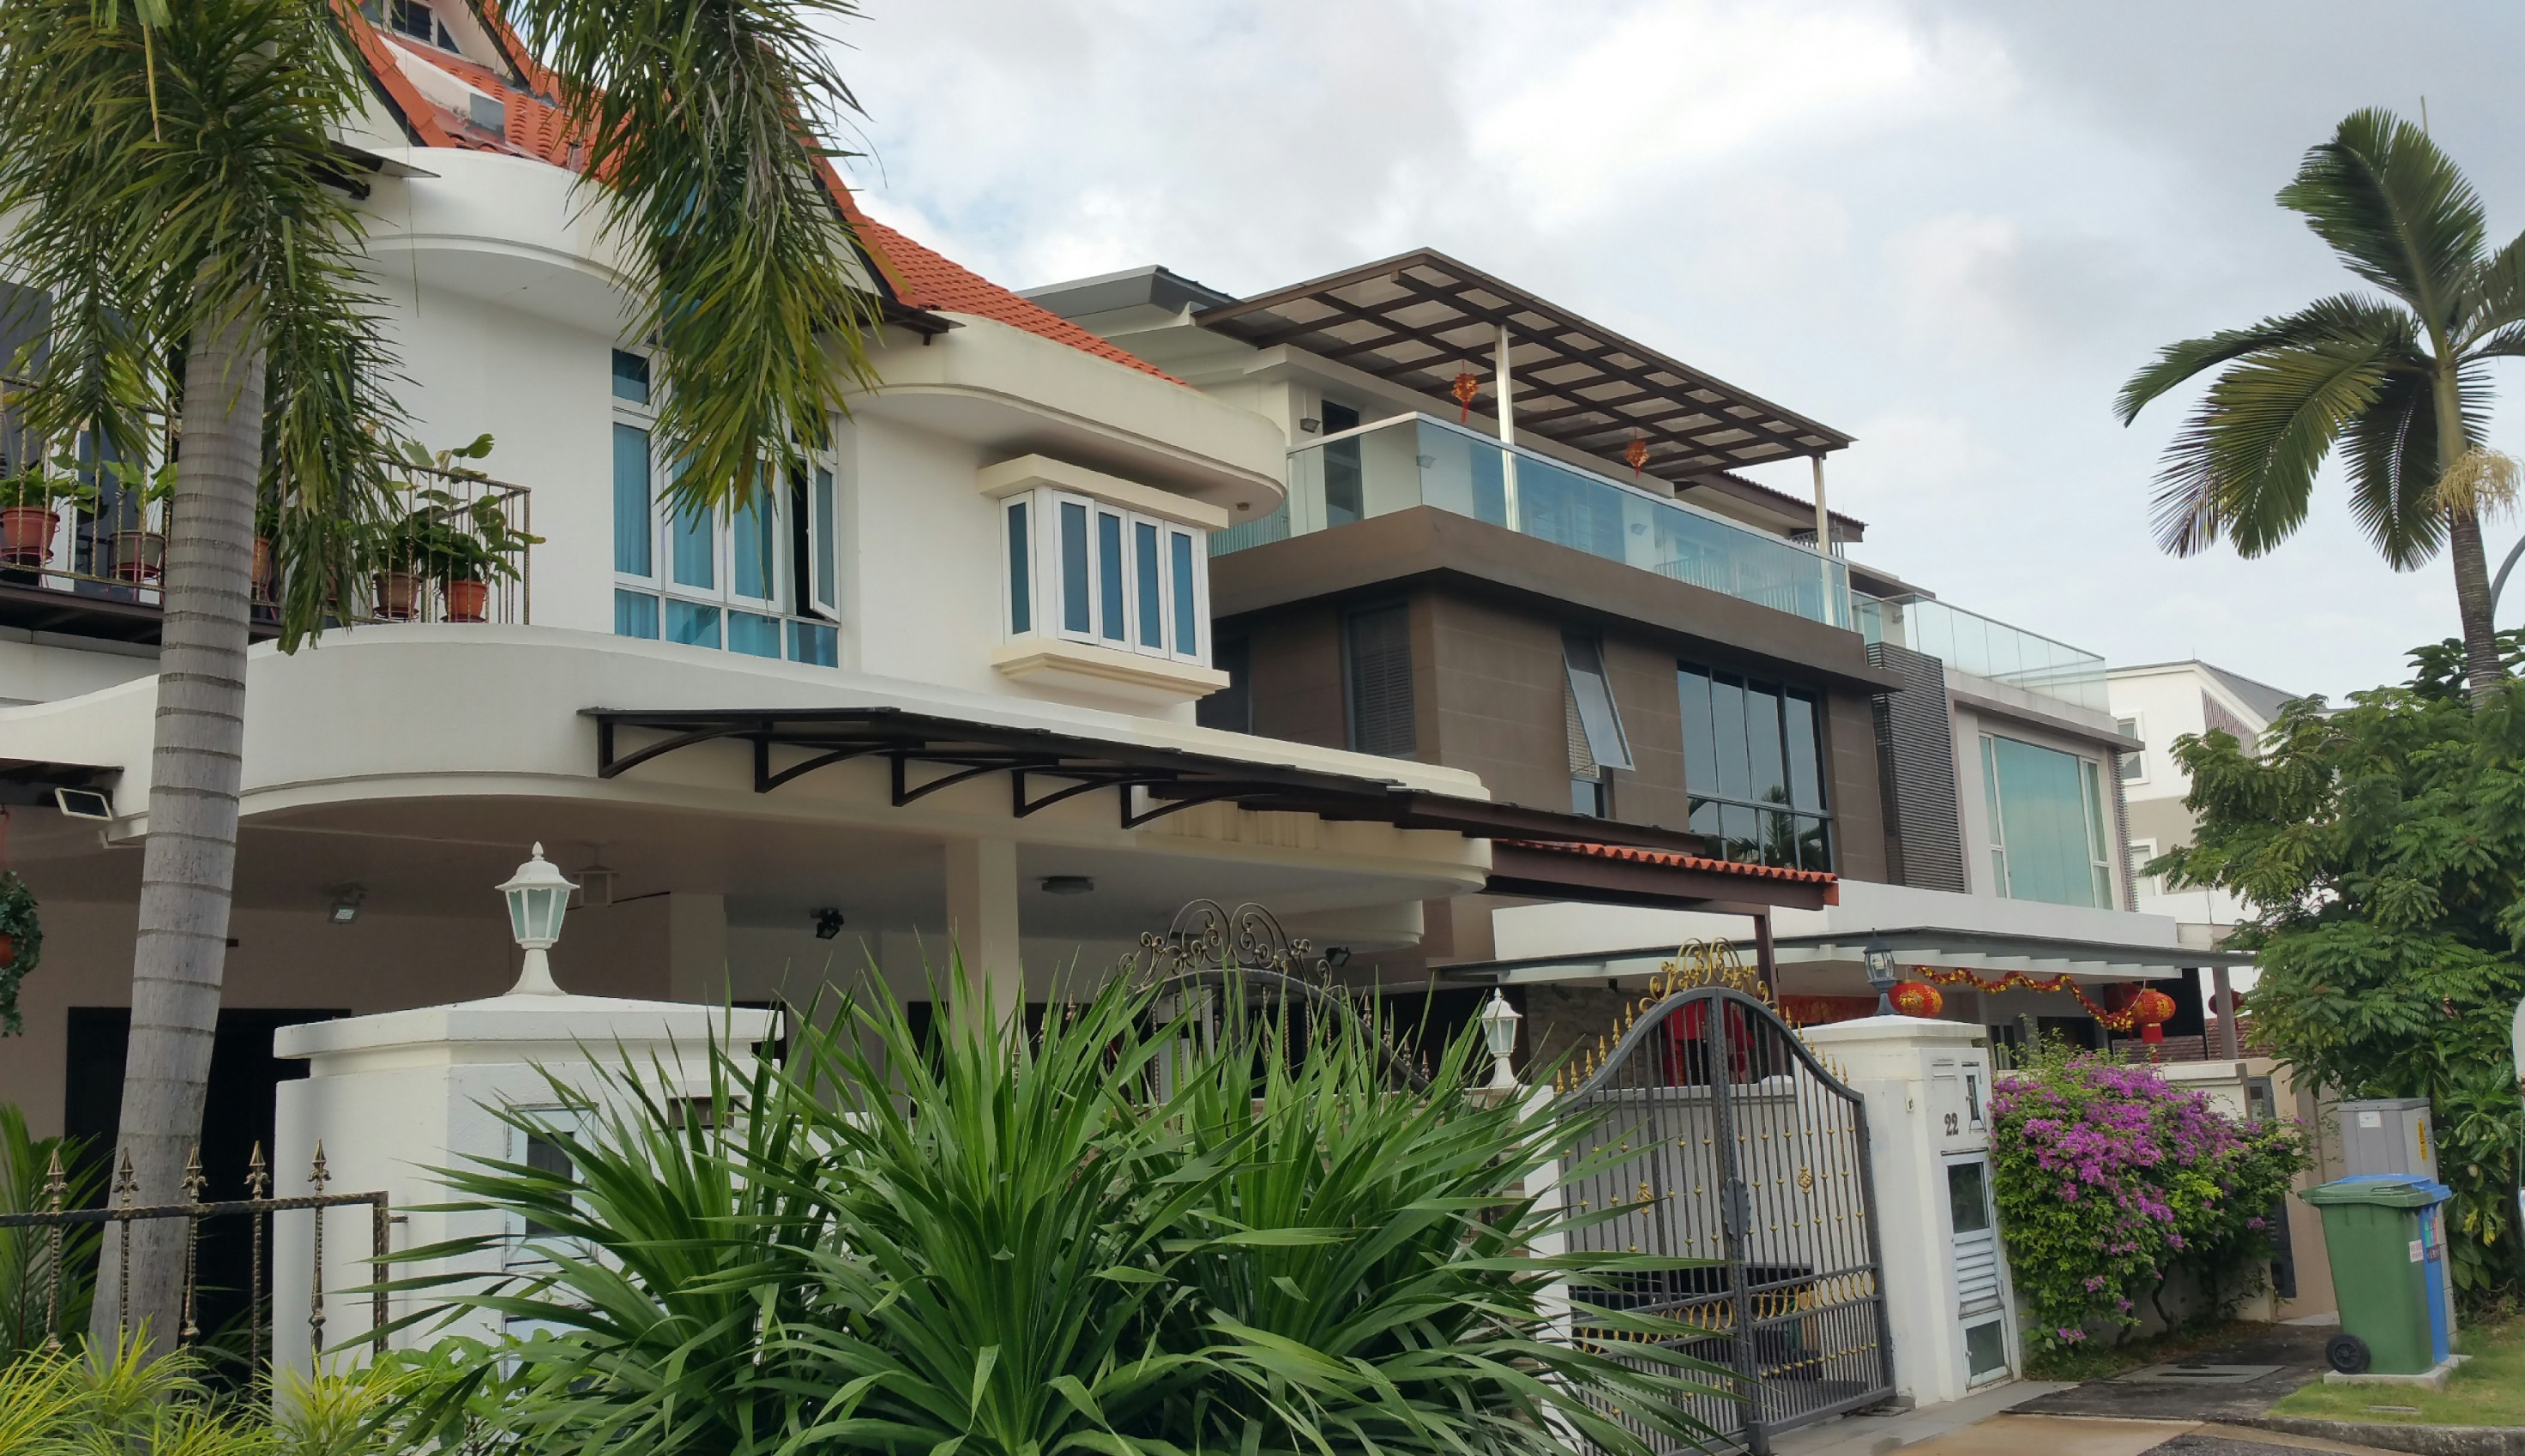 For The Construction And Renovation Advice And Ideas On The Terrace House  Renovation And Construction Works, Our Friendly Contractor Will Go Down To  Your ...